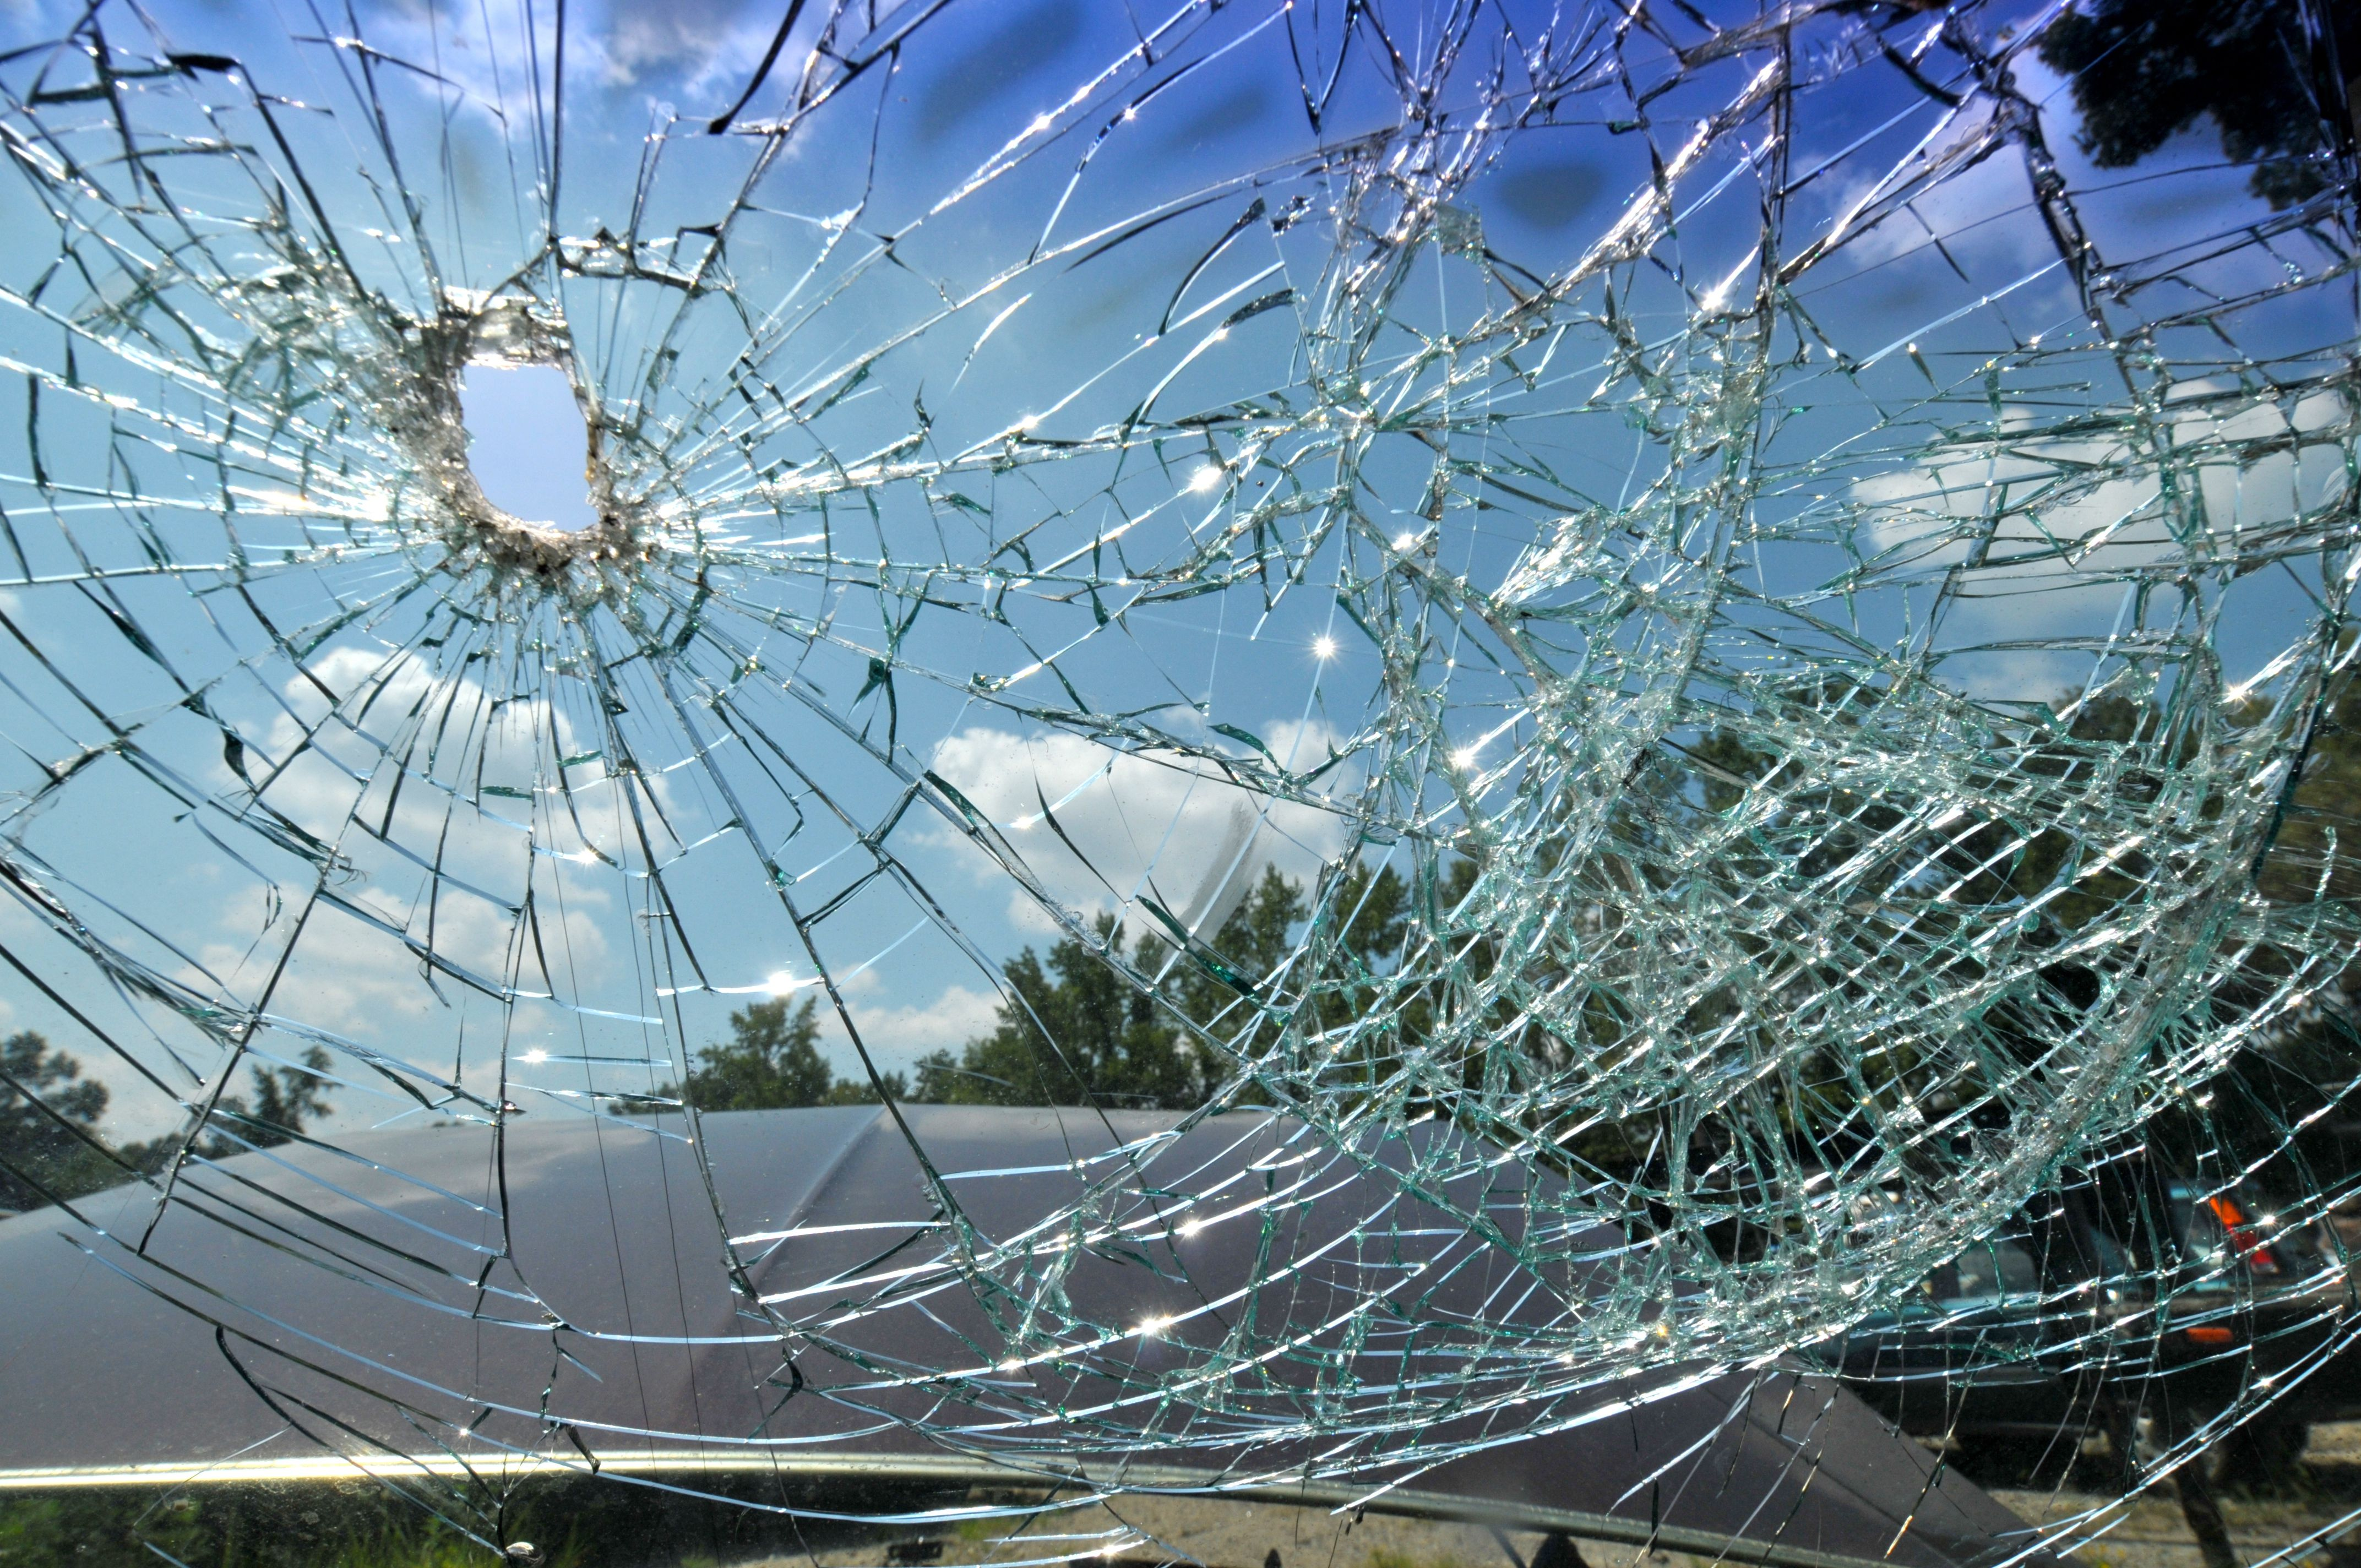 Do You Have The Right Insurance To Fix Windshield Damage